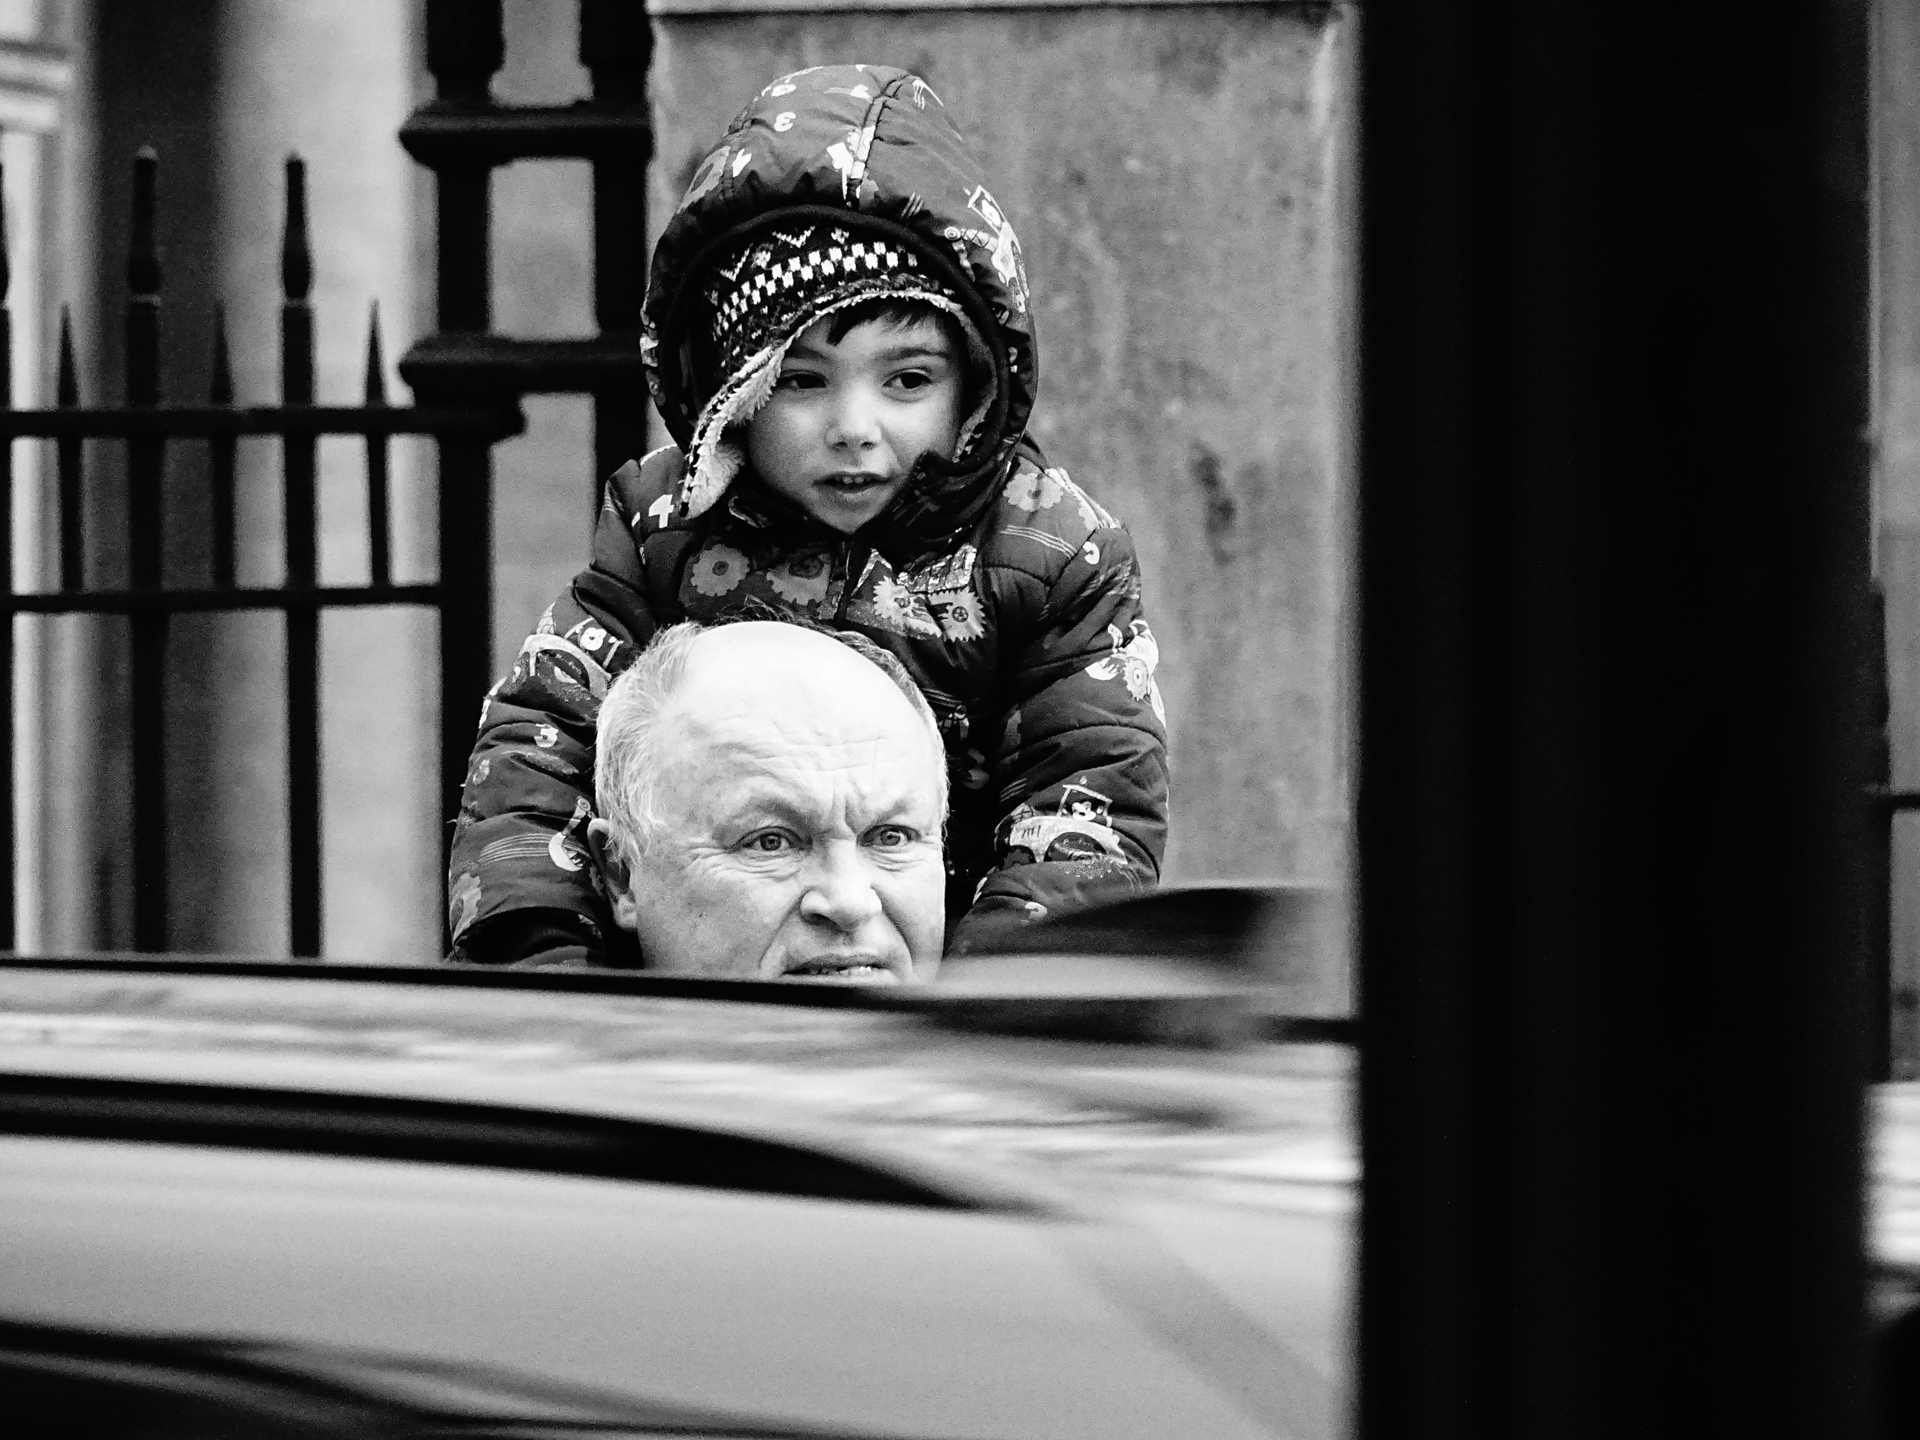 On His Grandfather's Shoulders, London by Stacy Widelitz